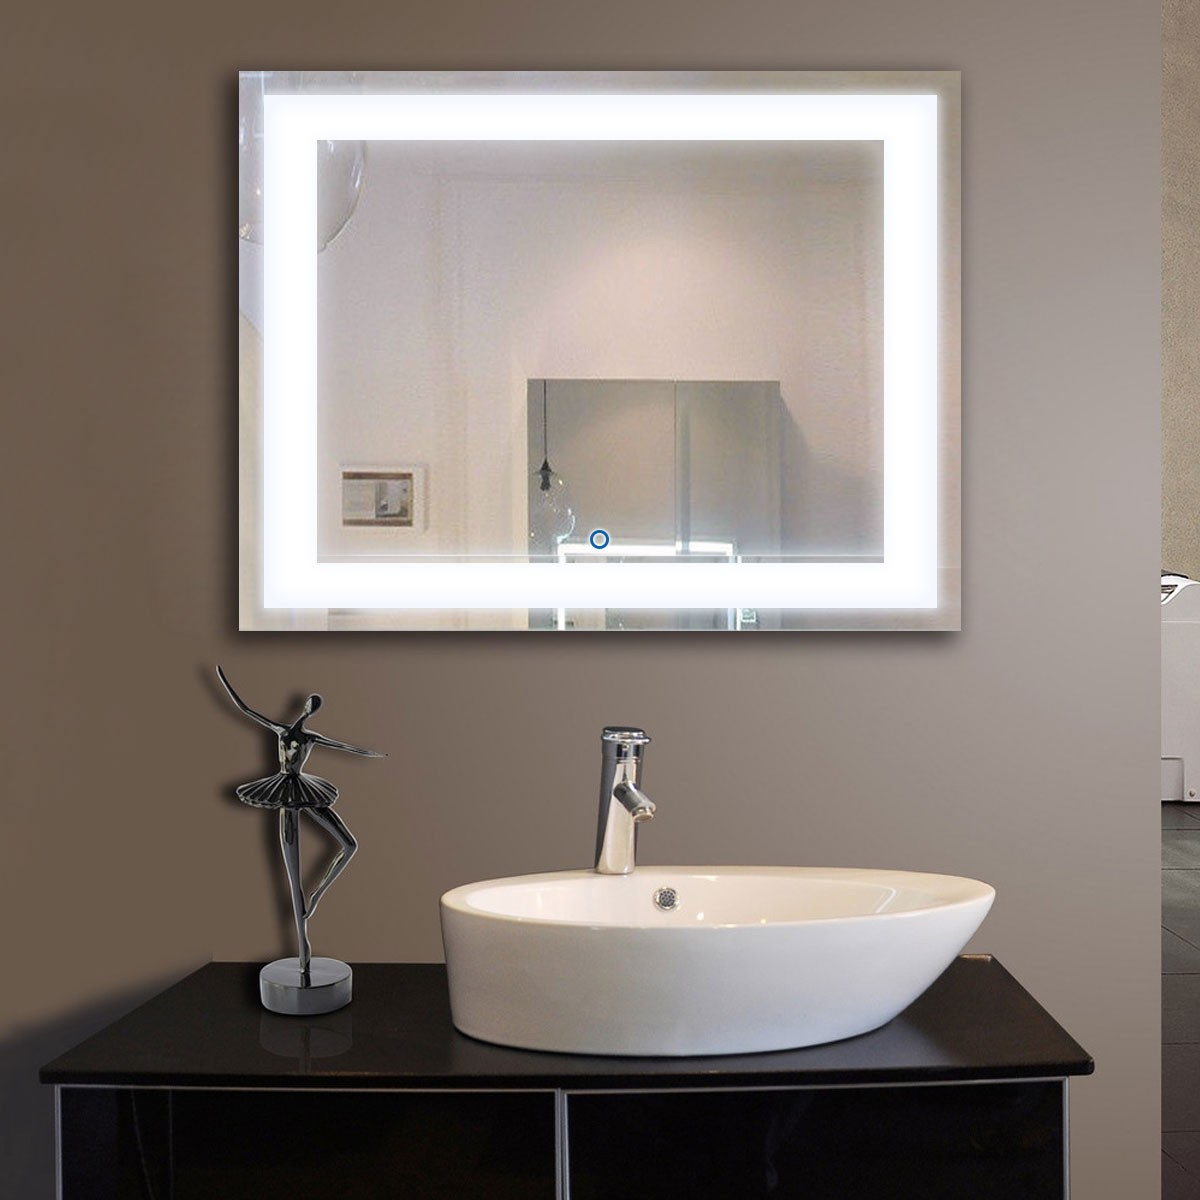 Bathroom Mirrors Made In Usa 36 x 28 in horizontal led mirror, touch button (dk-od-ck010-i